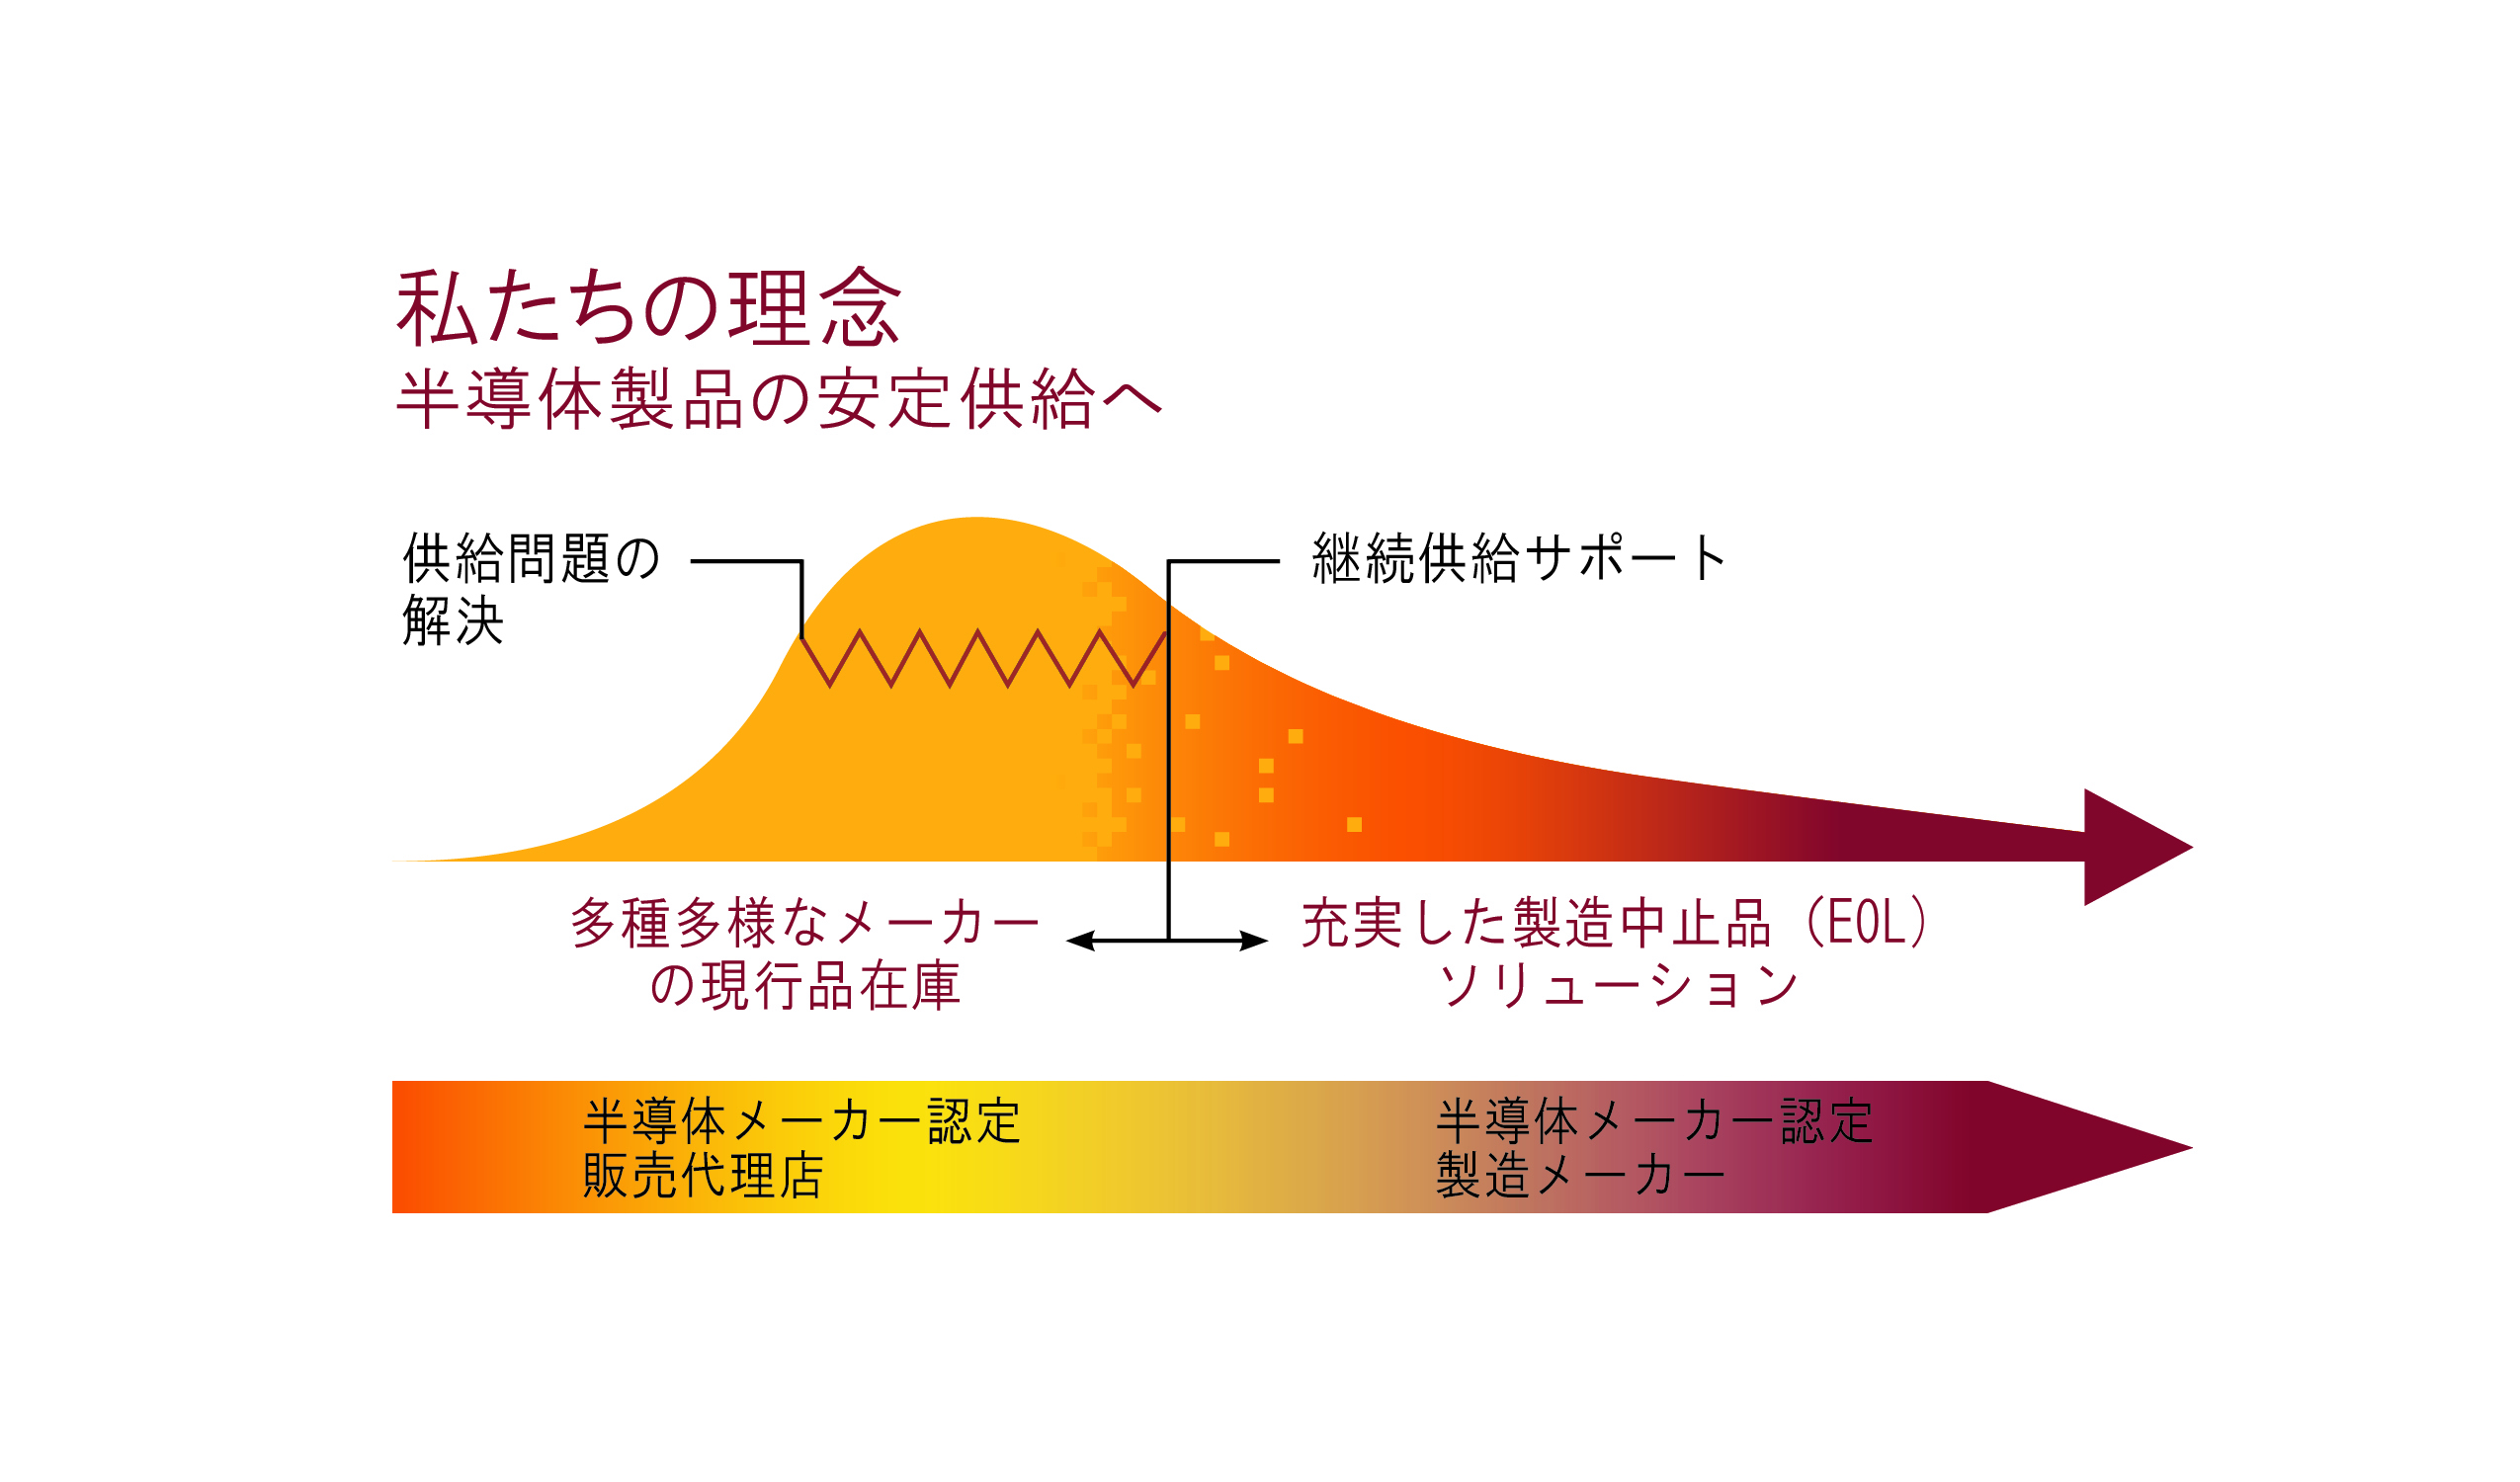 Life Cycle Graphic_21mar17_Japanese.jpg